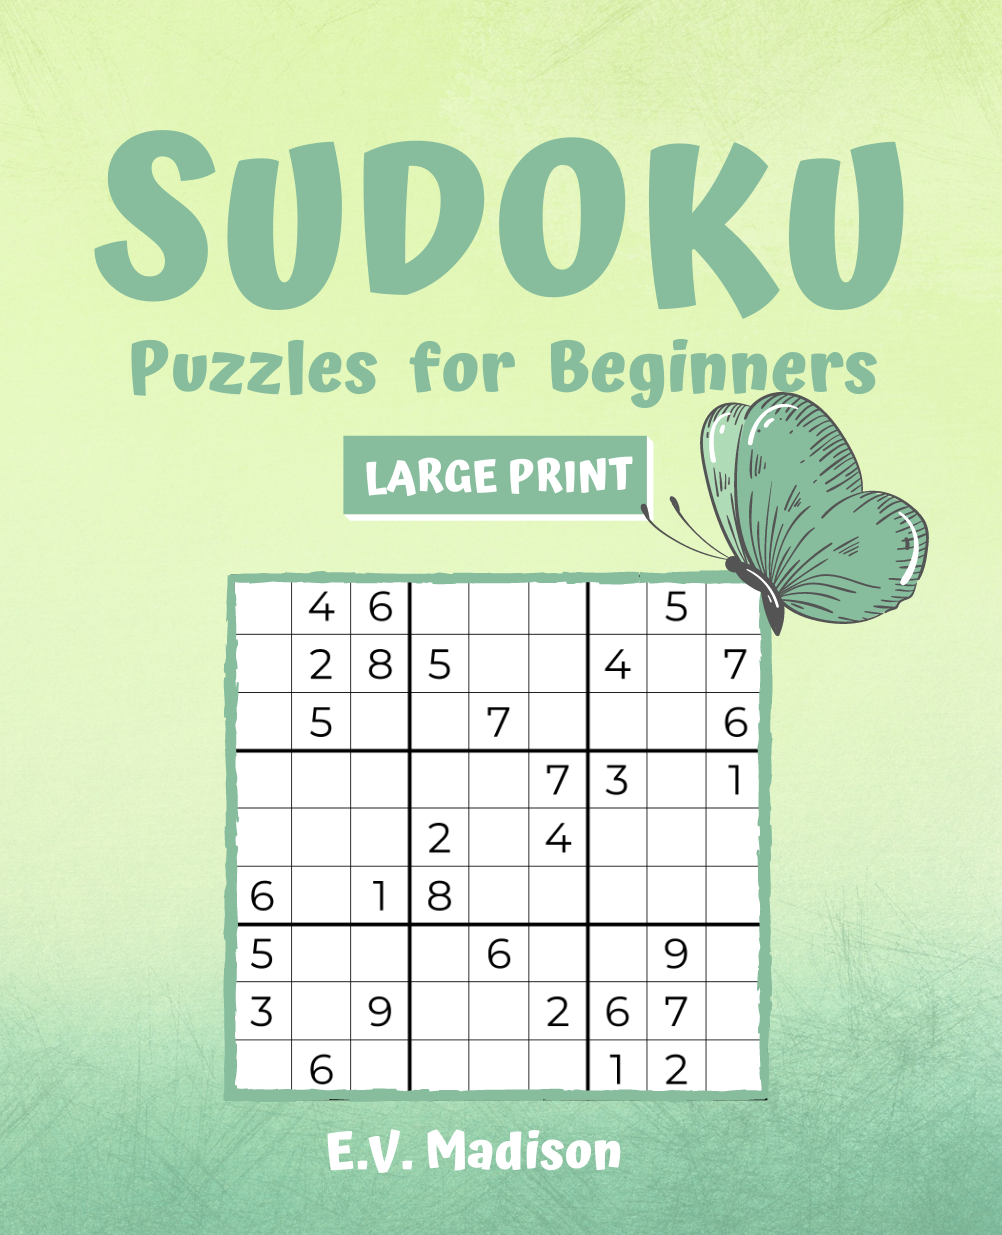 SUDOKU Puzzles for Beginners - LARGE PRINT